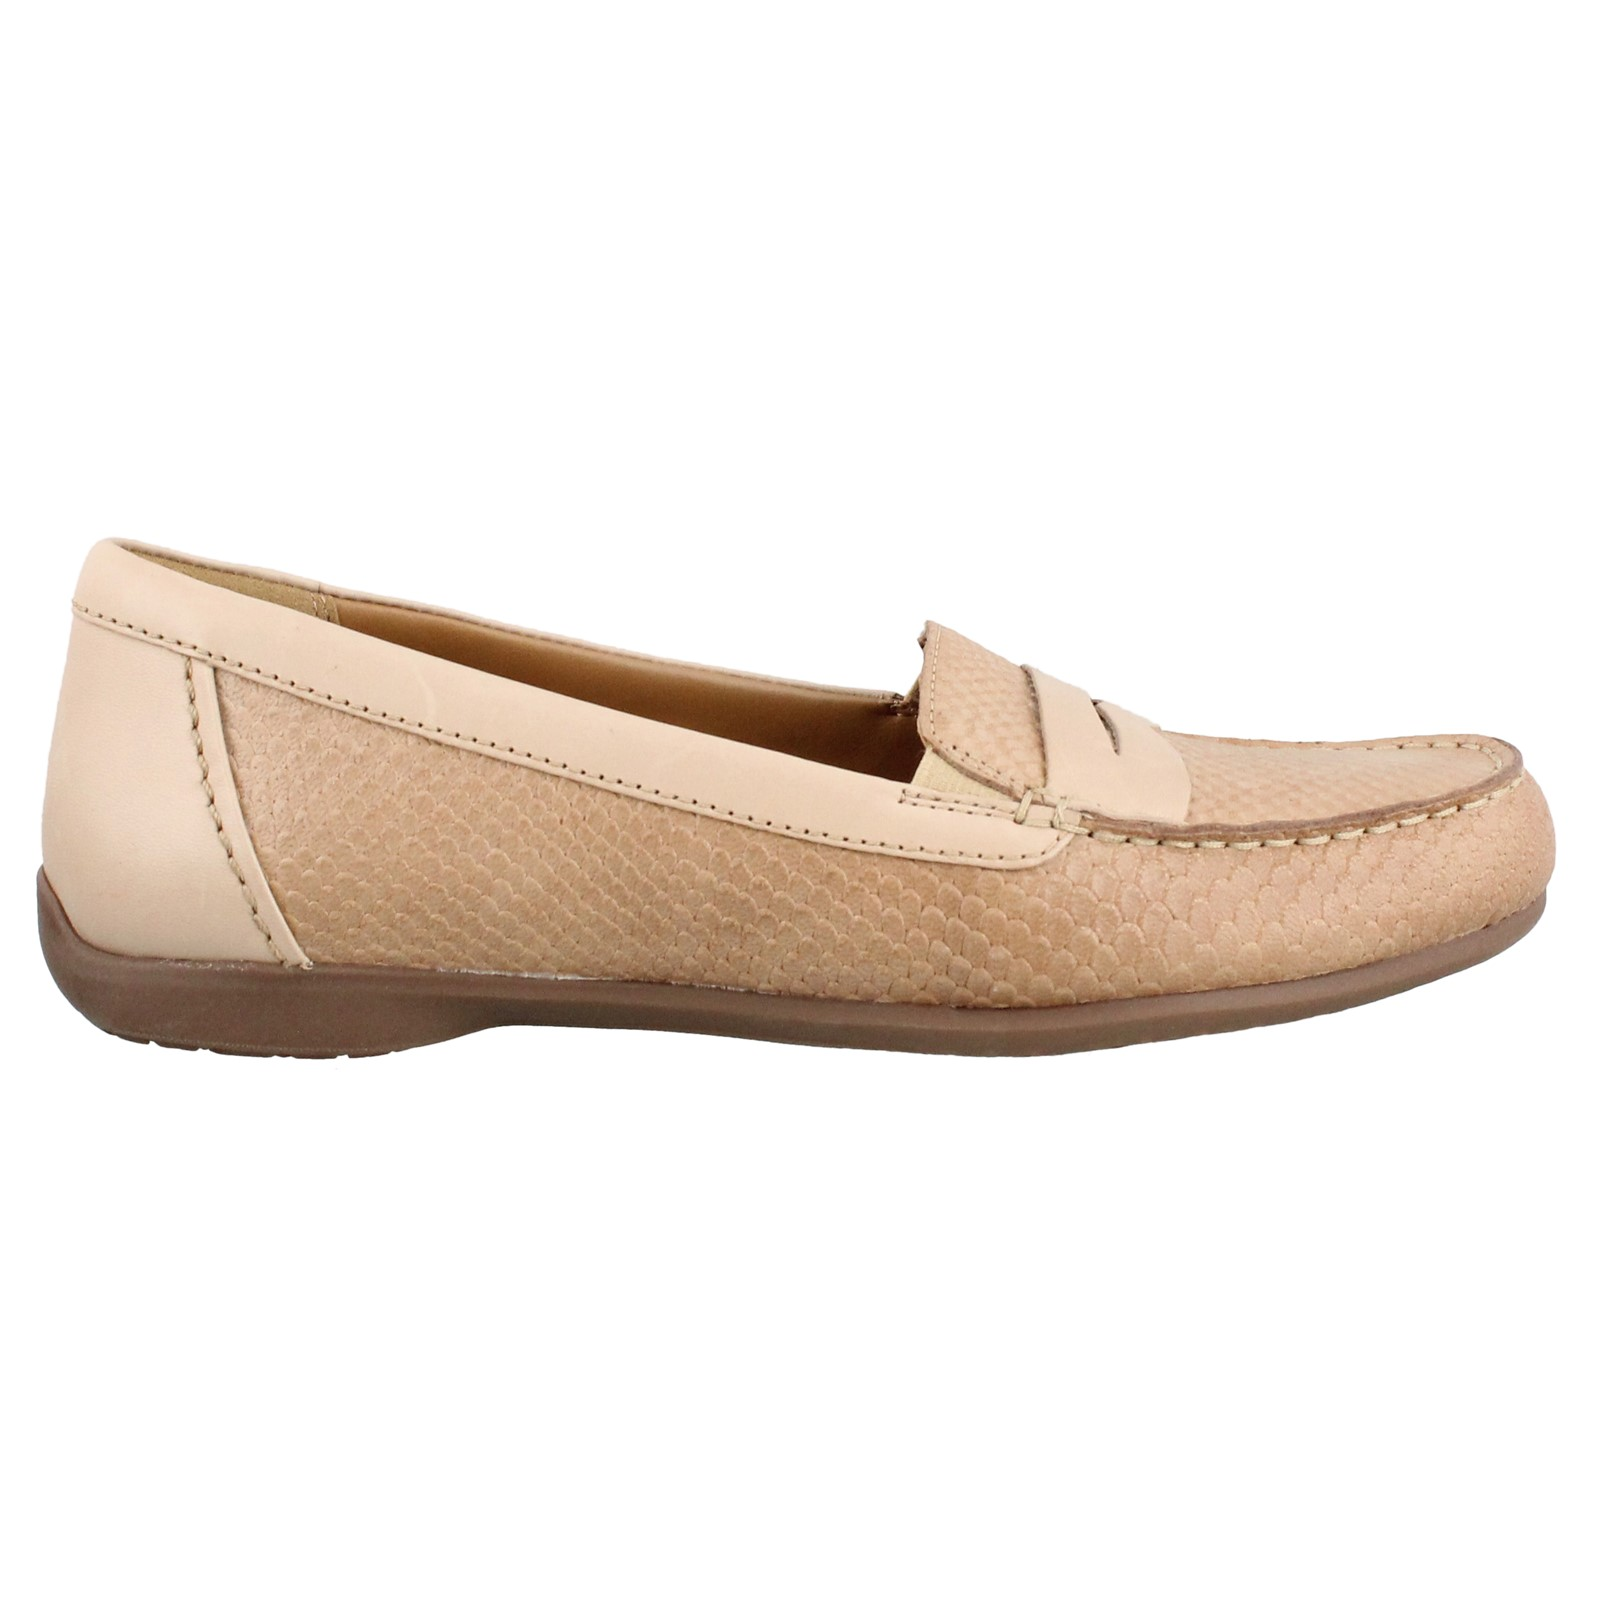 Women's Clarks, Branna Henna Slip on Penny Loafer